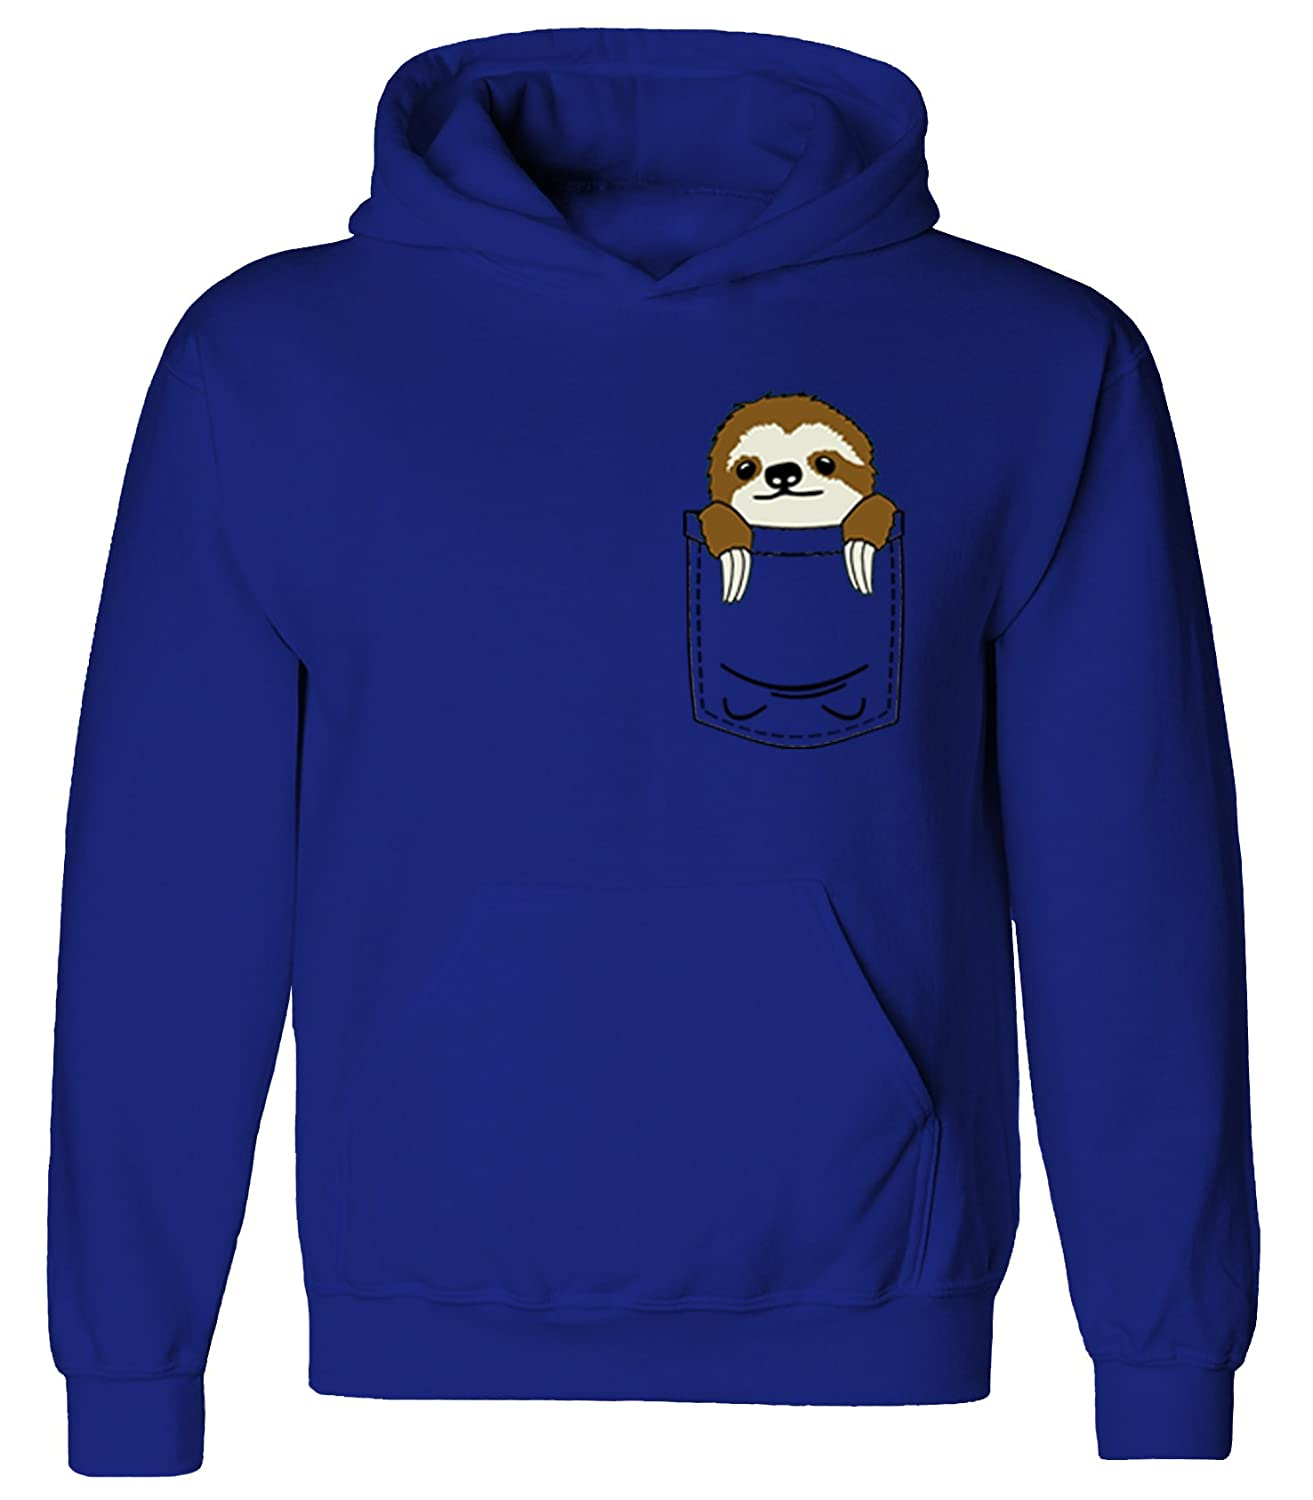 Youth Kids Childrens Pocket Sloth Mini Pet Cute Funny Pullover Hoodie